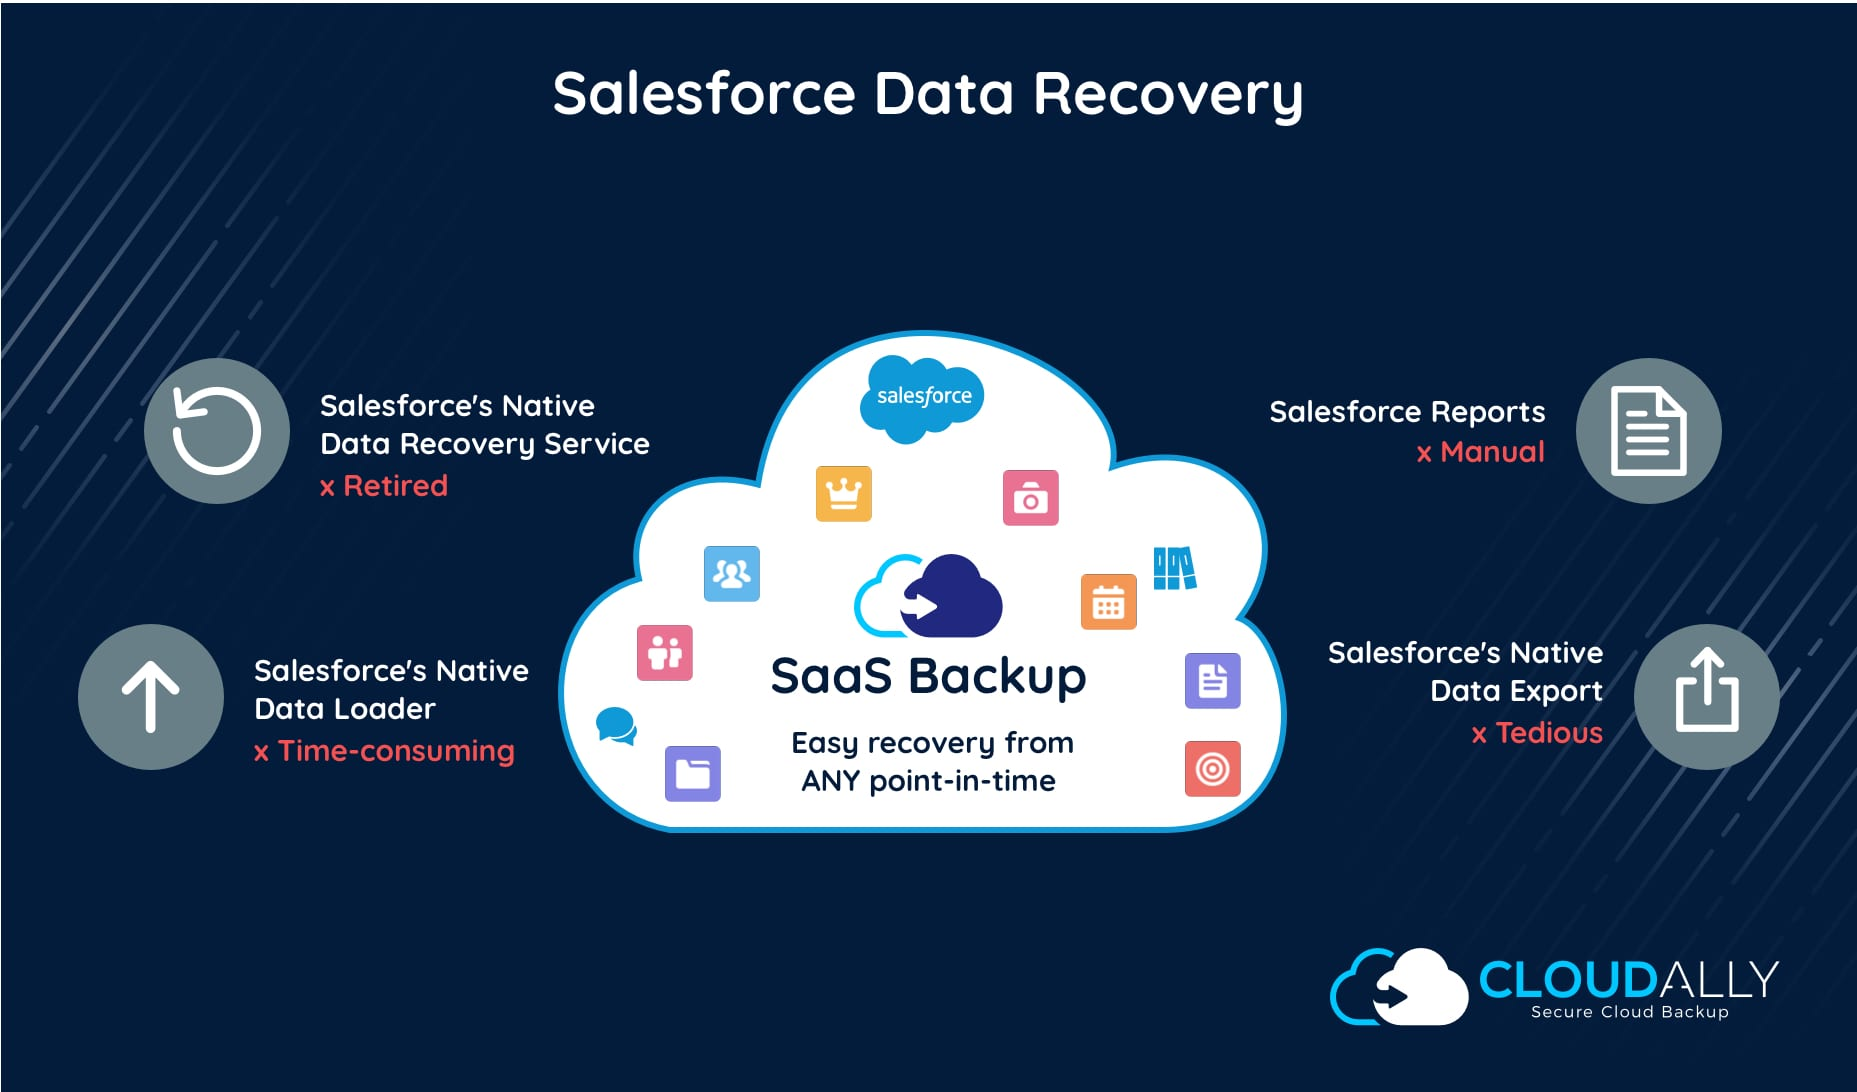 Salesforce Data Recovery